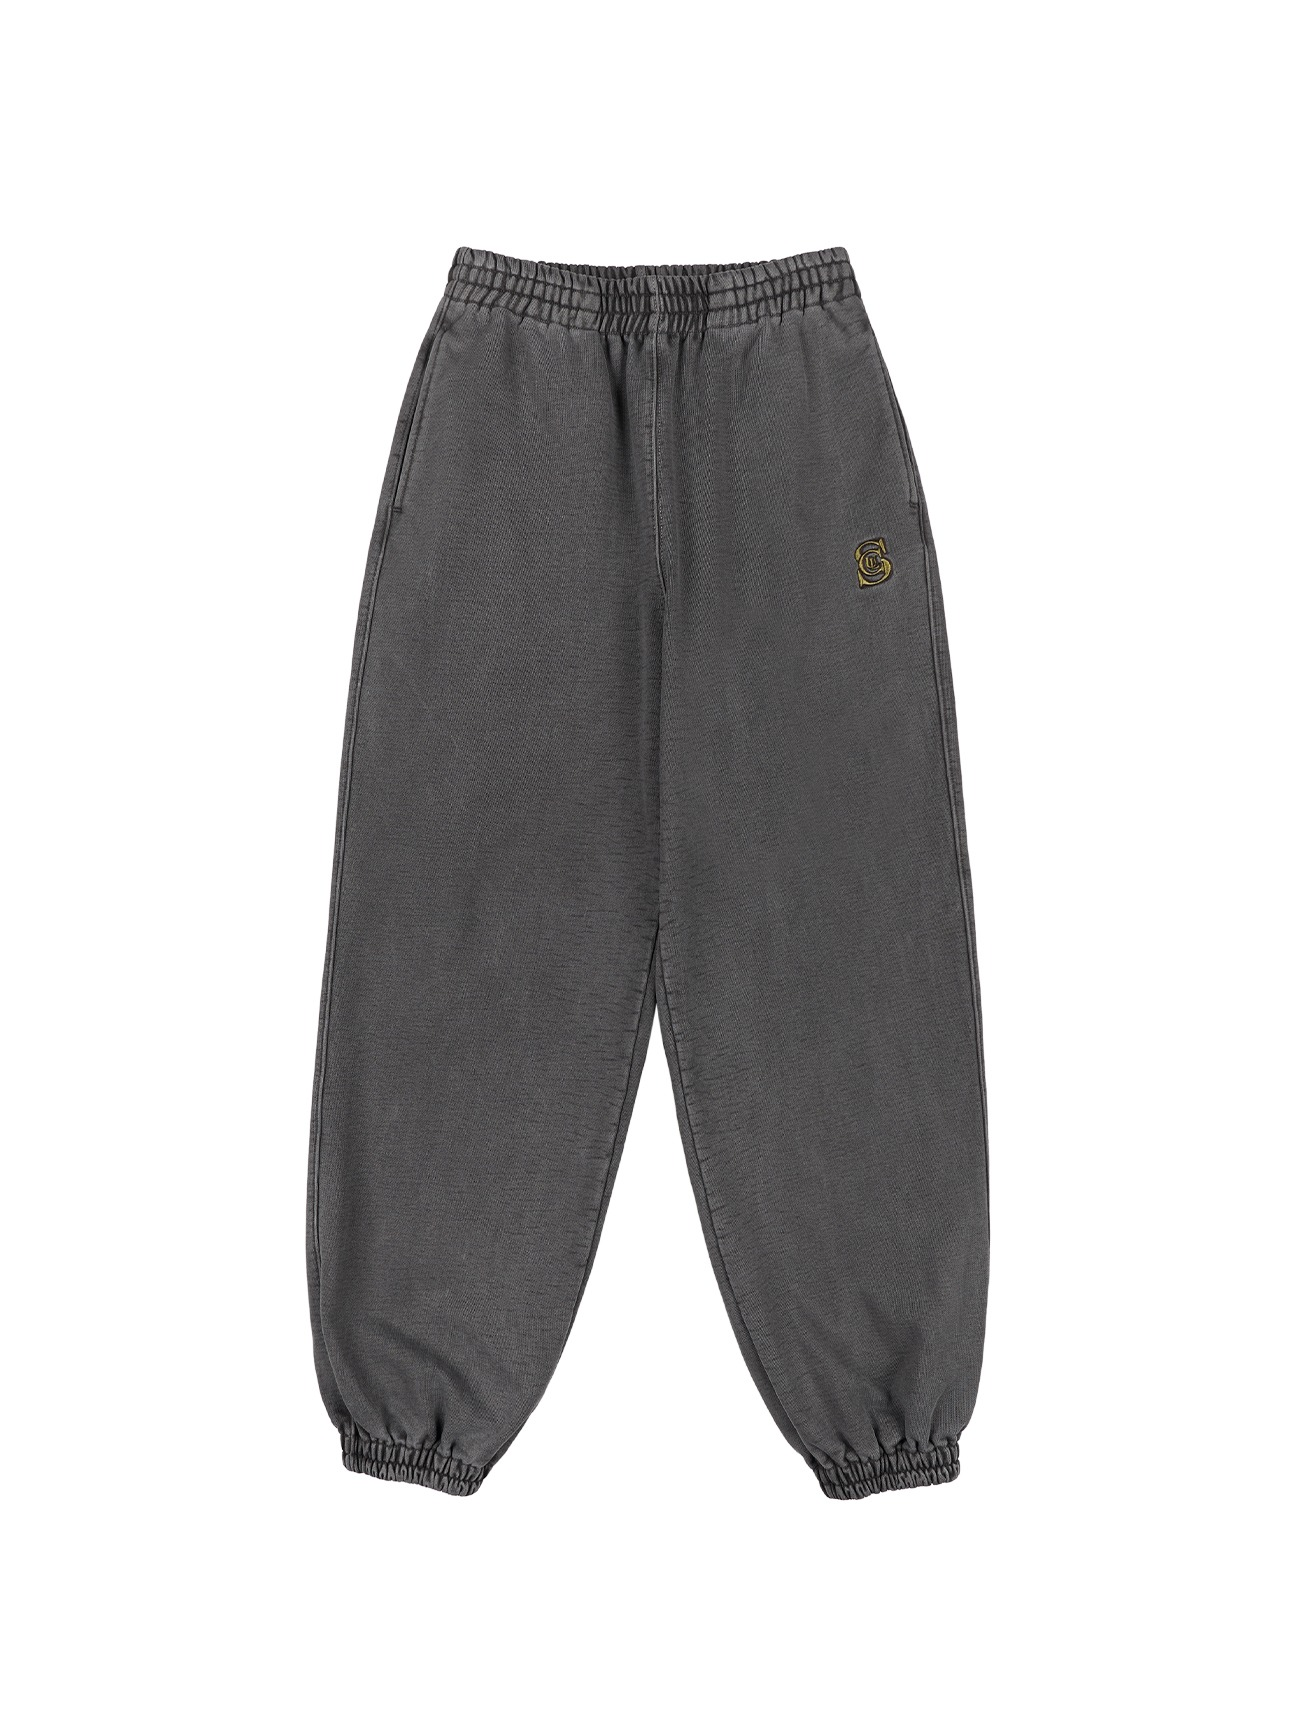 90's Logo Sweatpants Washed Charcoal